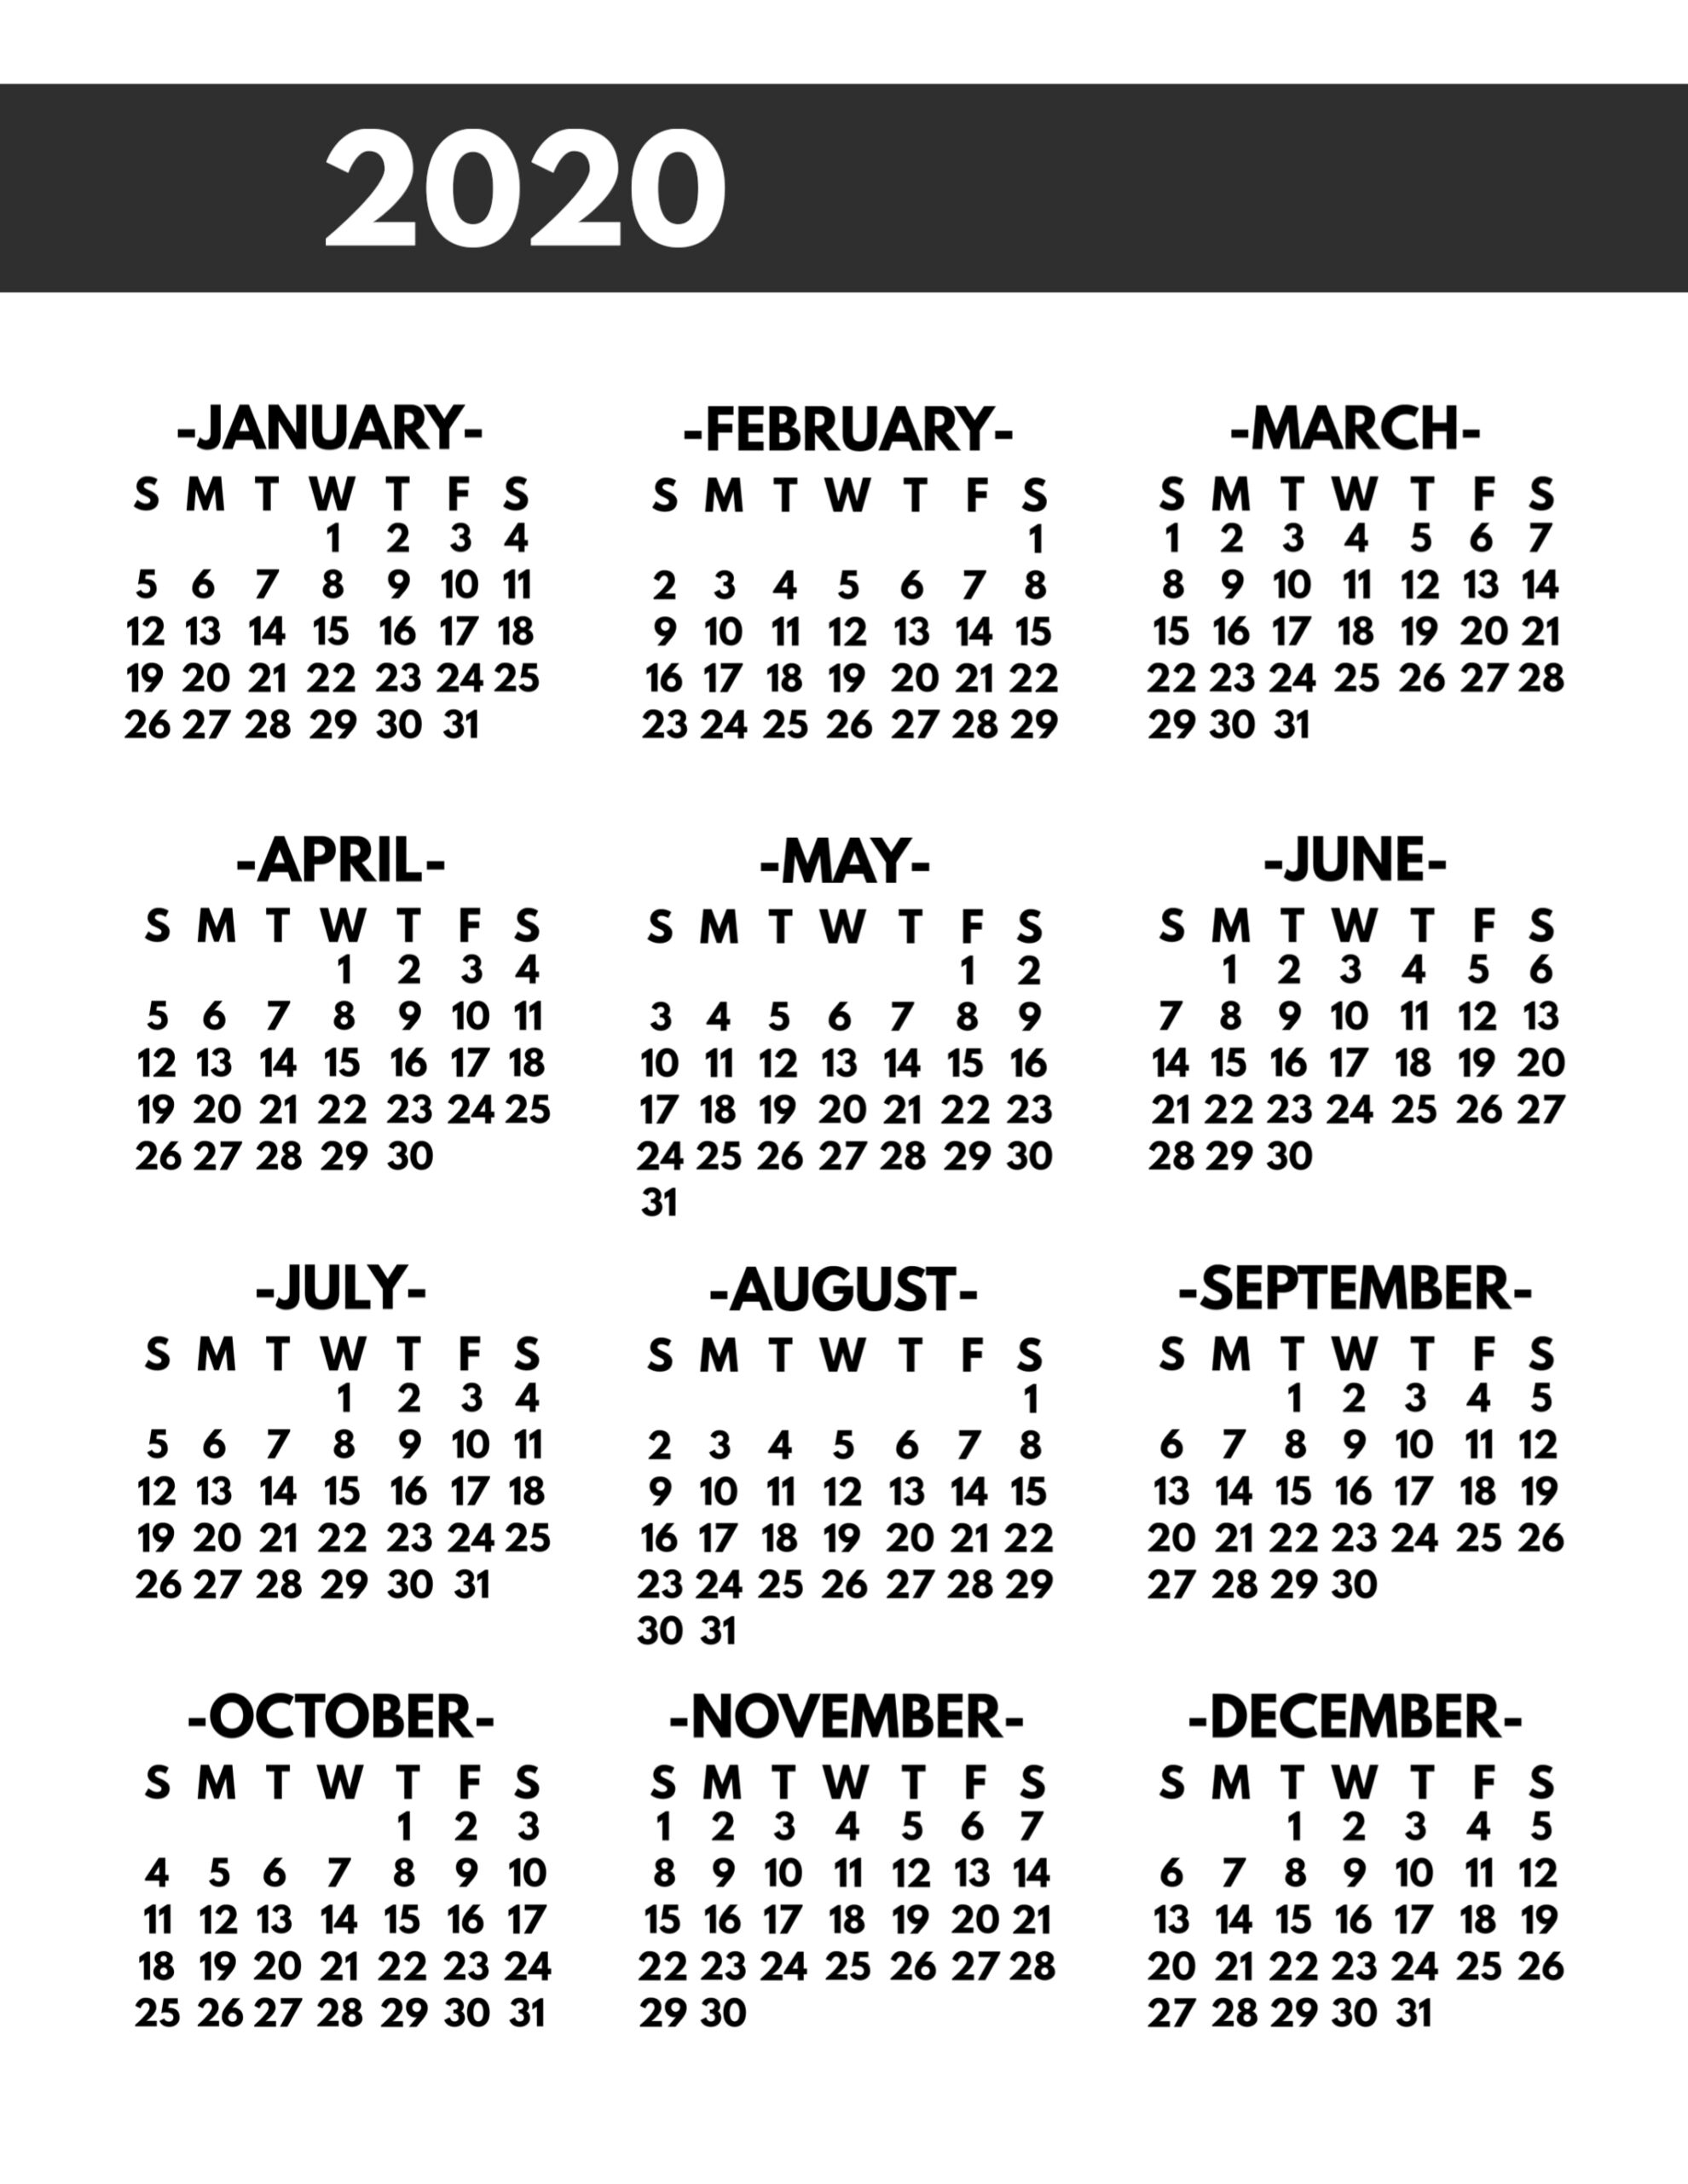 2020 Printable One Page Year At A Glance Calendar | Paper inside Free Printable Year At A Glance 2020 Calendar